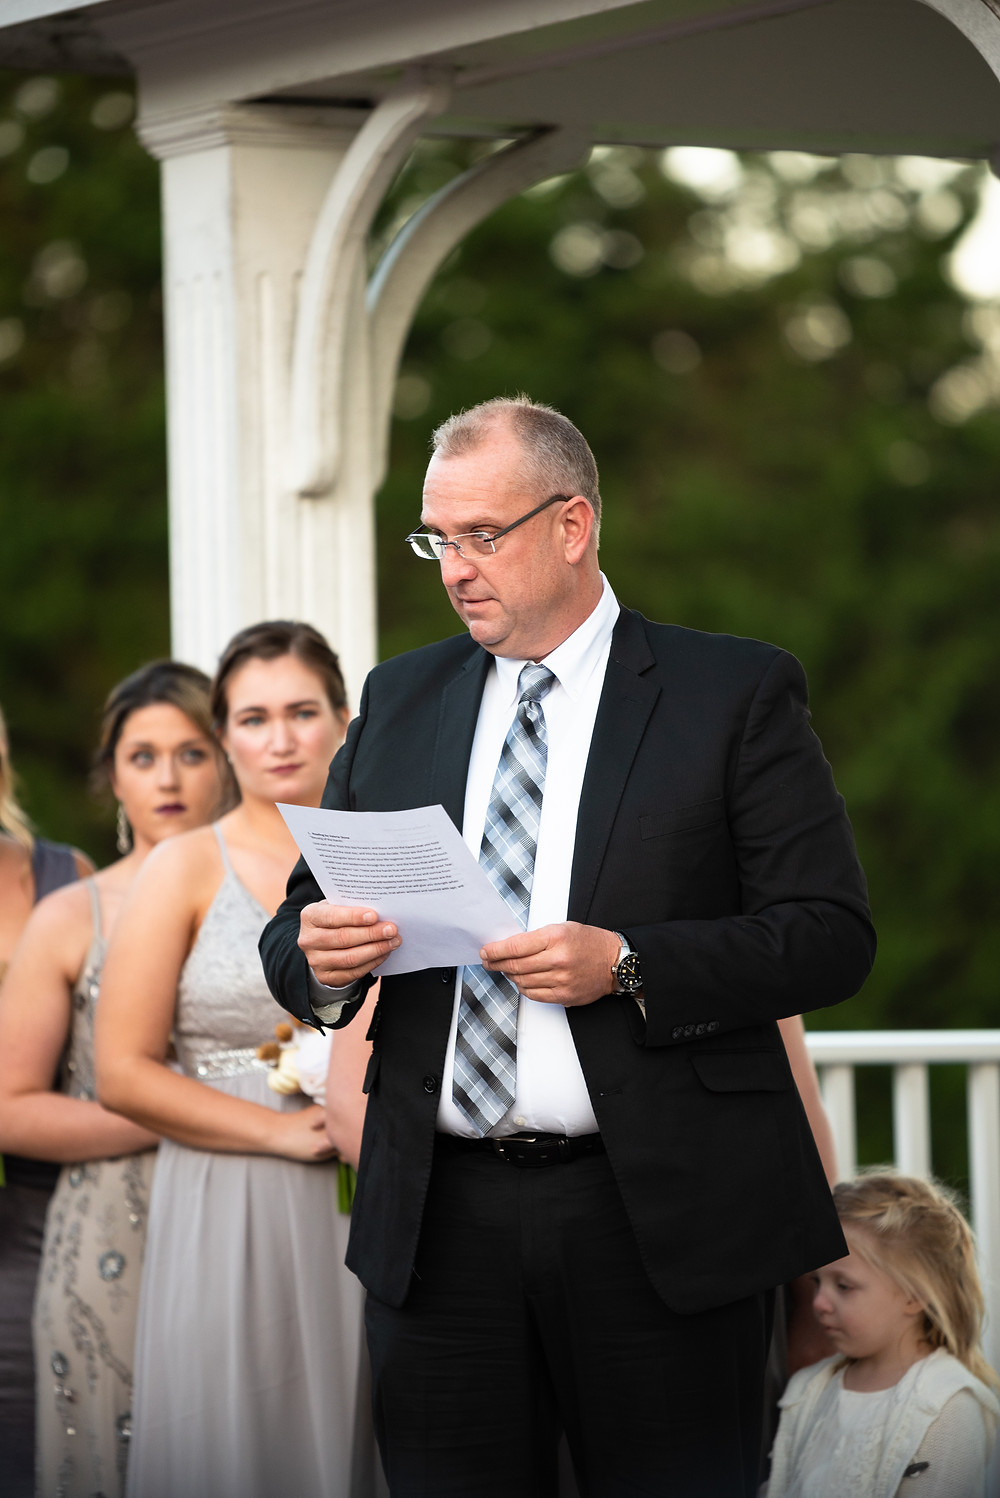 A family friend giving a speech during a chilly outdoor wedding ceremony in Maryland